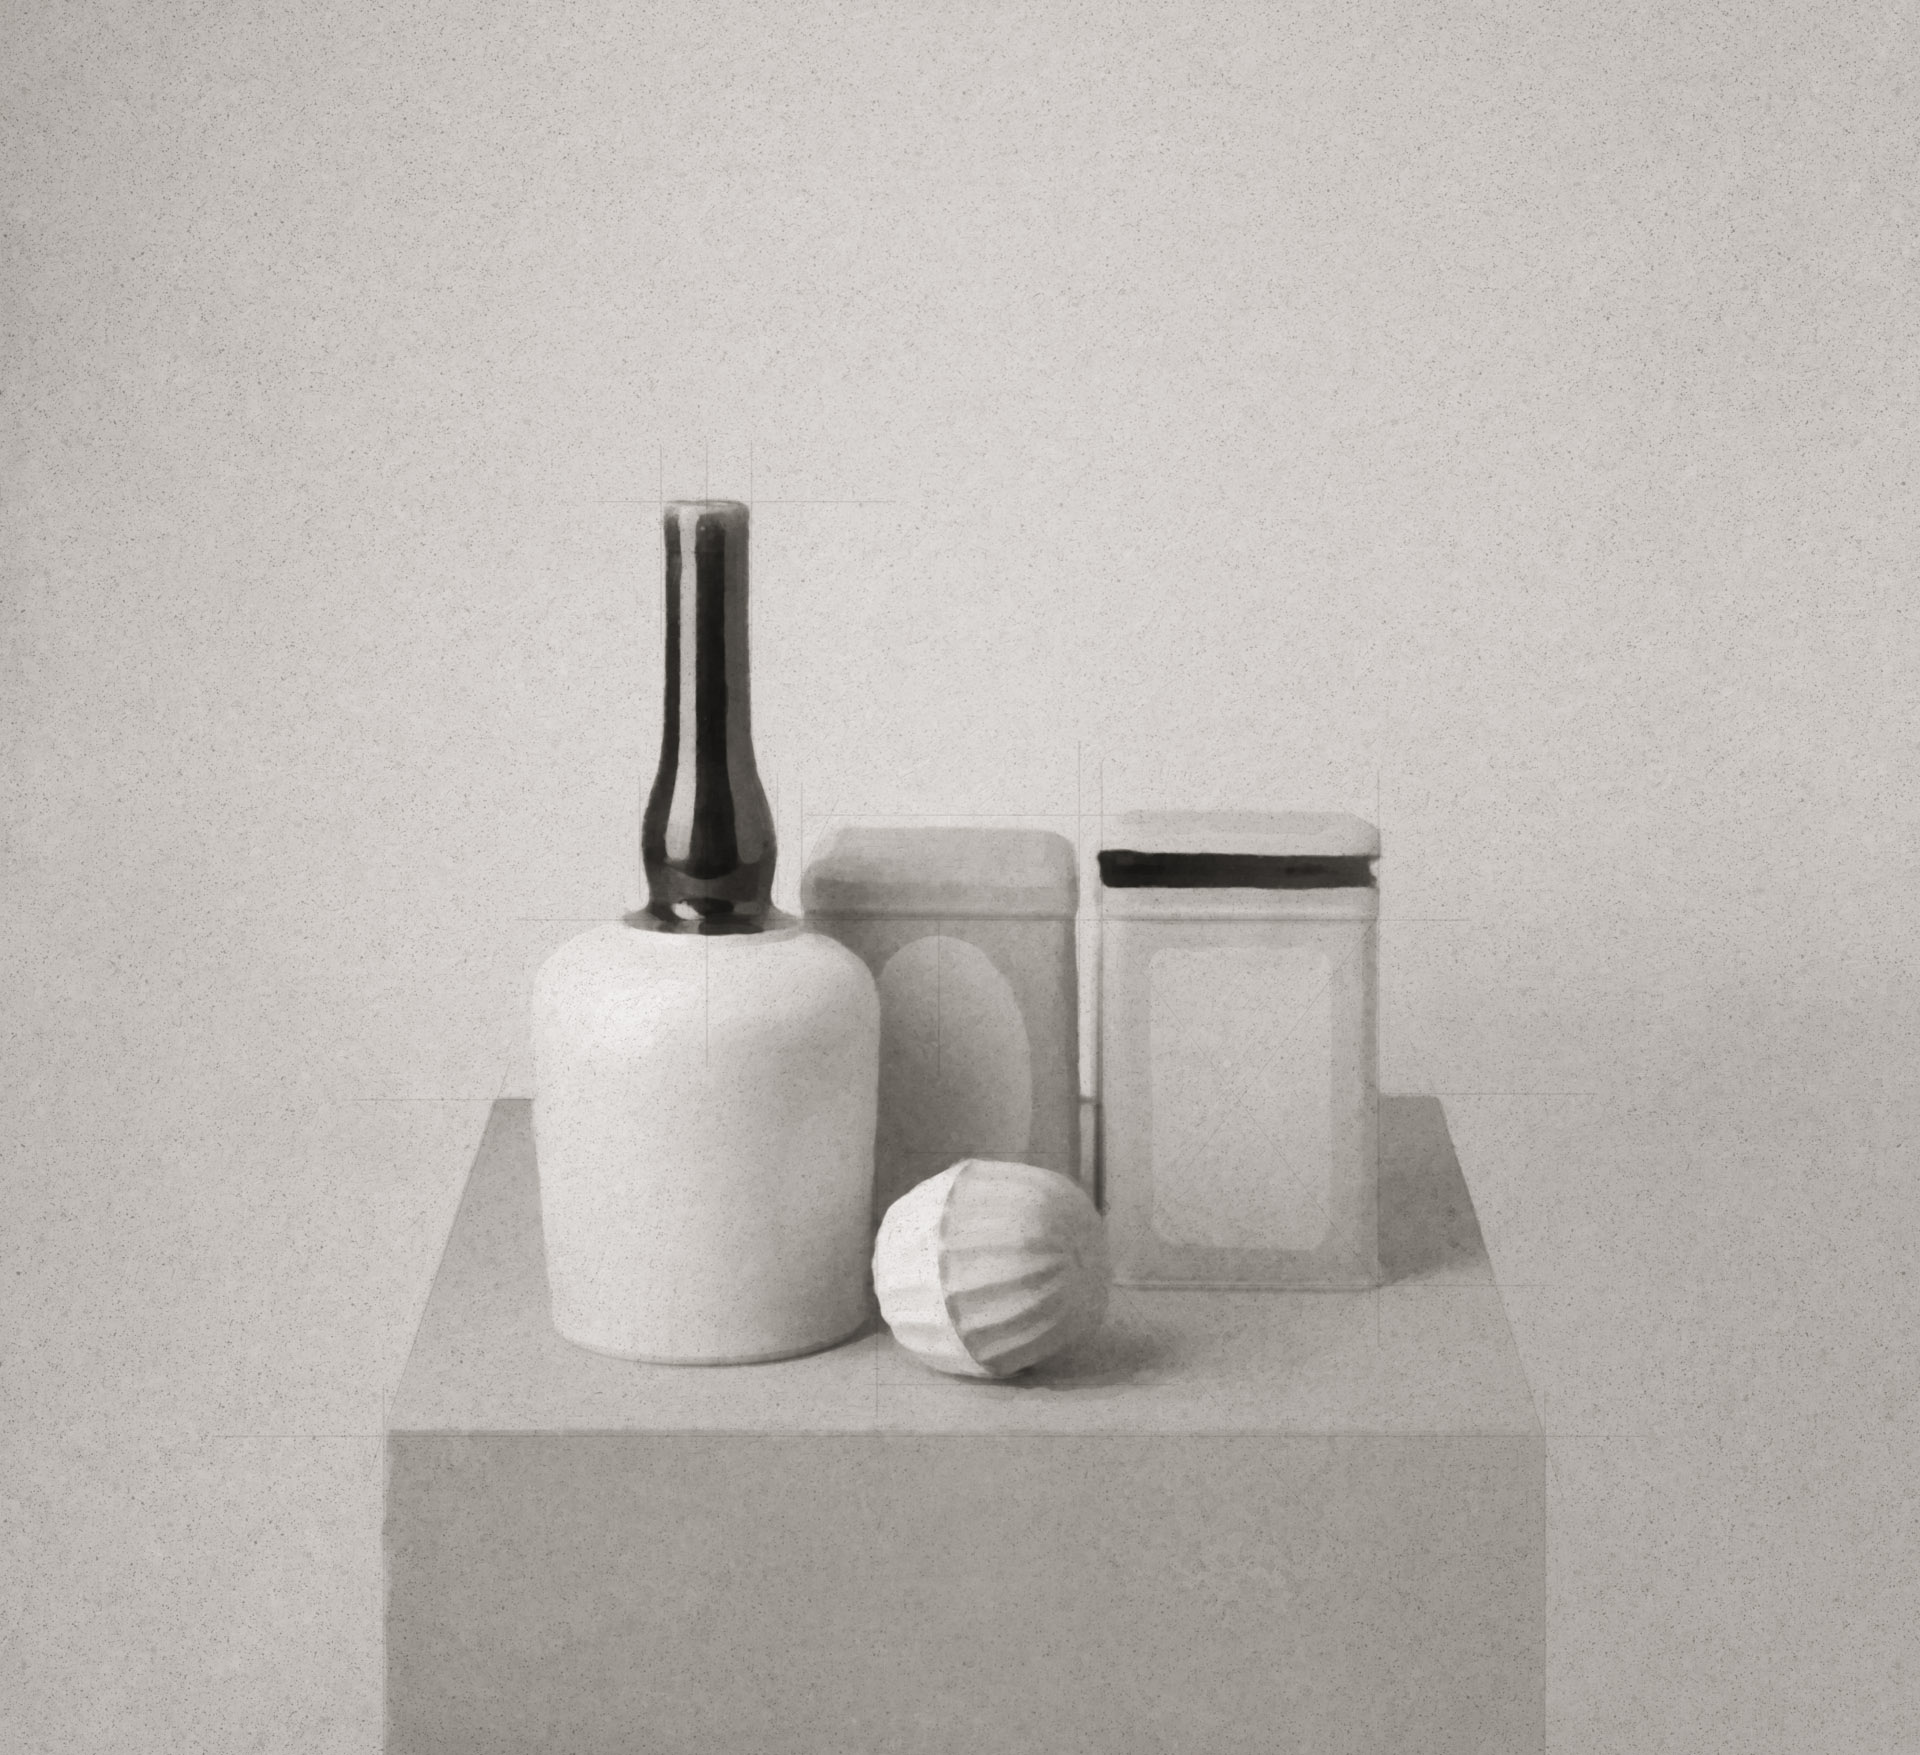 Morandi on a Pedestal 183